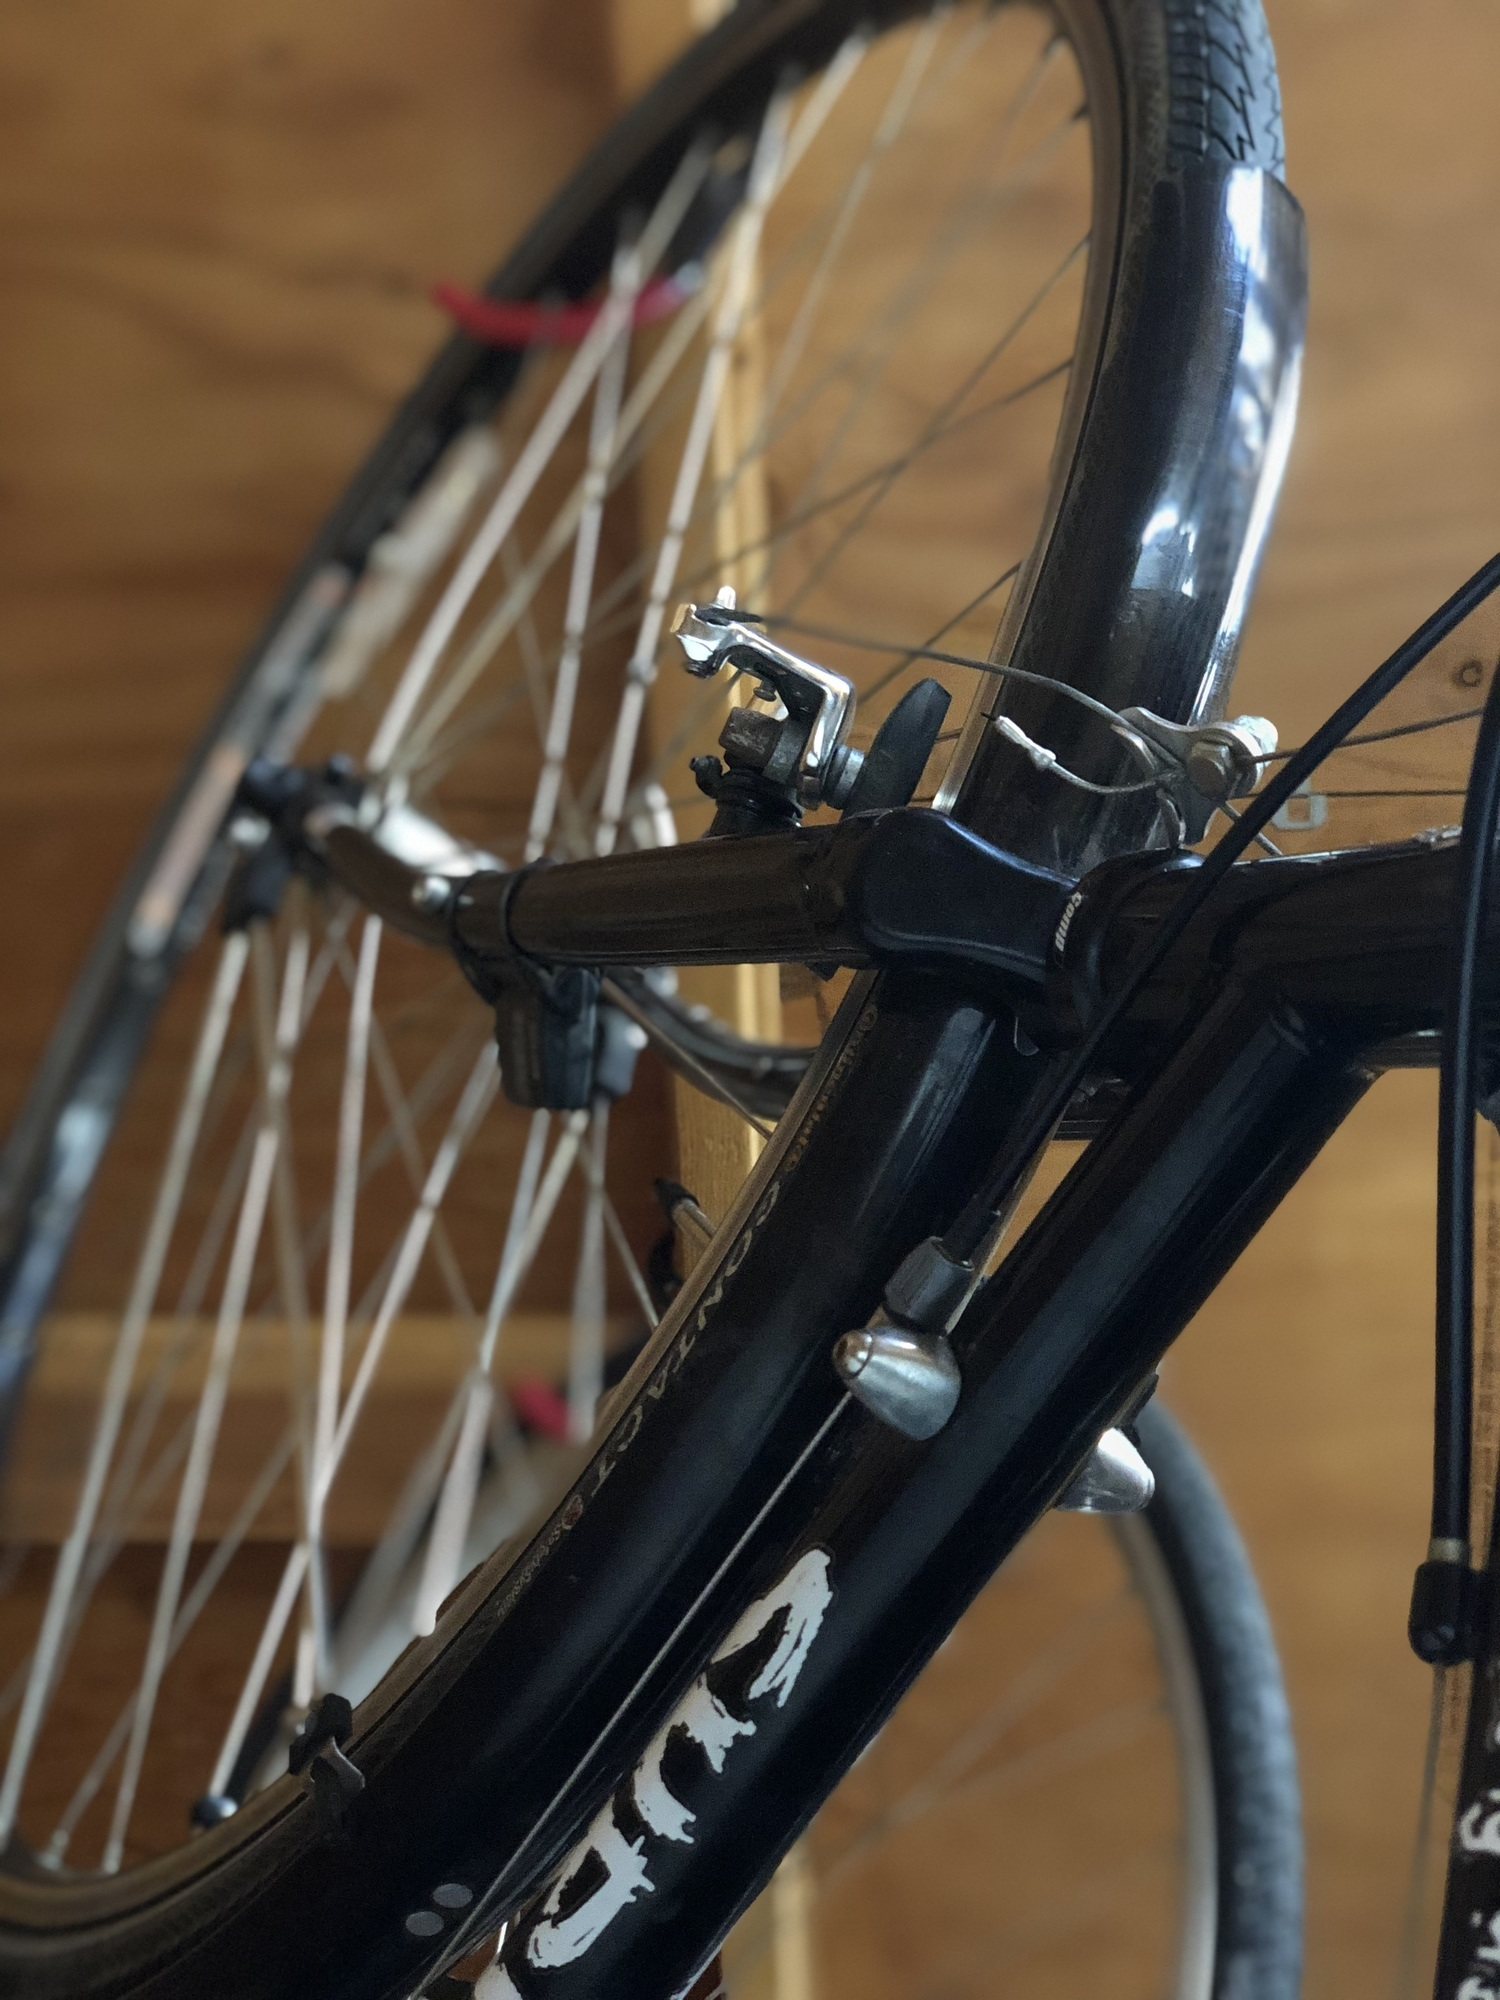 Rim brakes on the Surly Long Haul Trucker